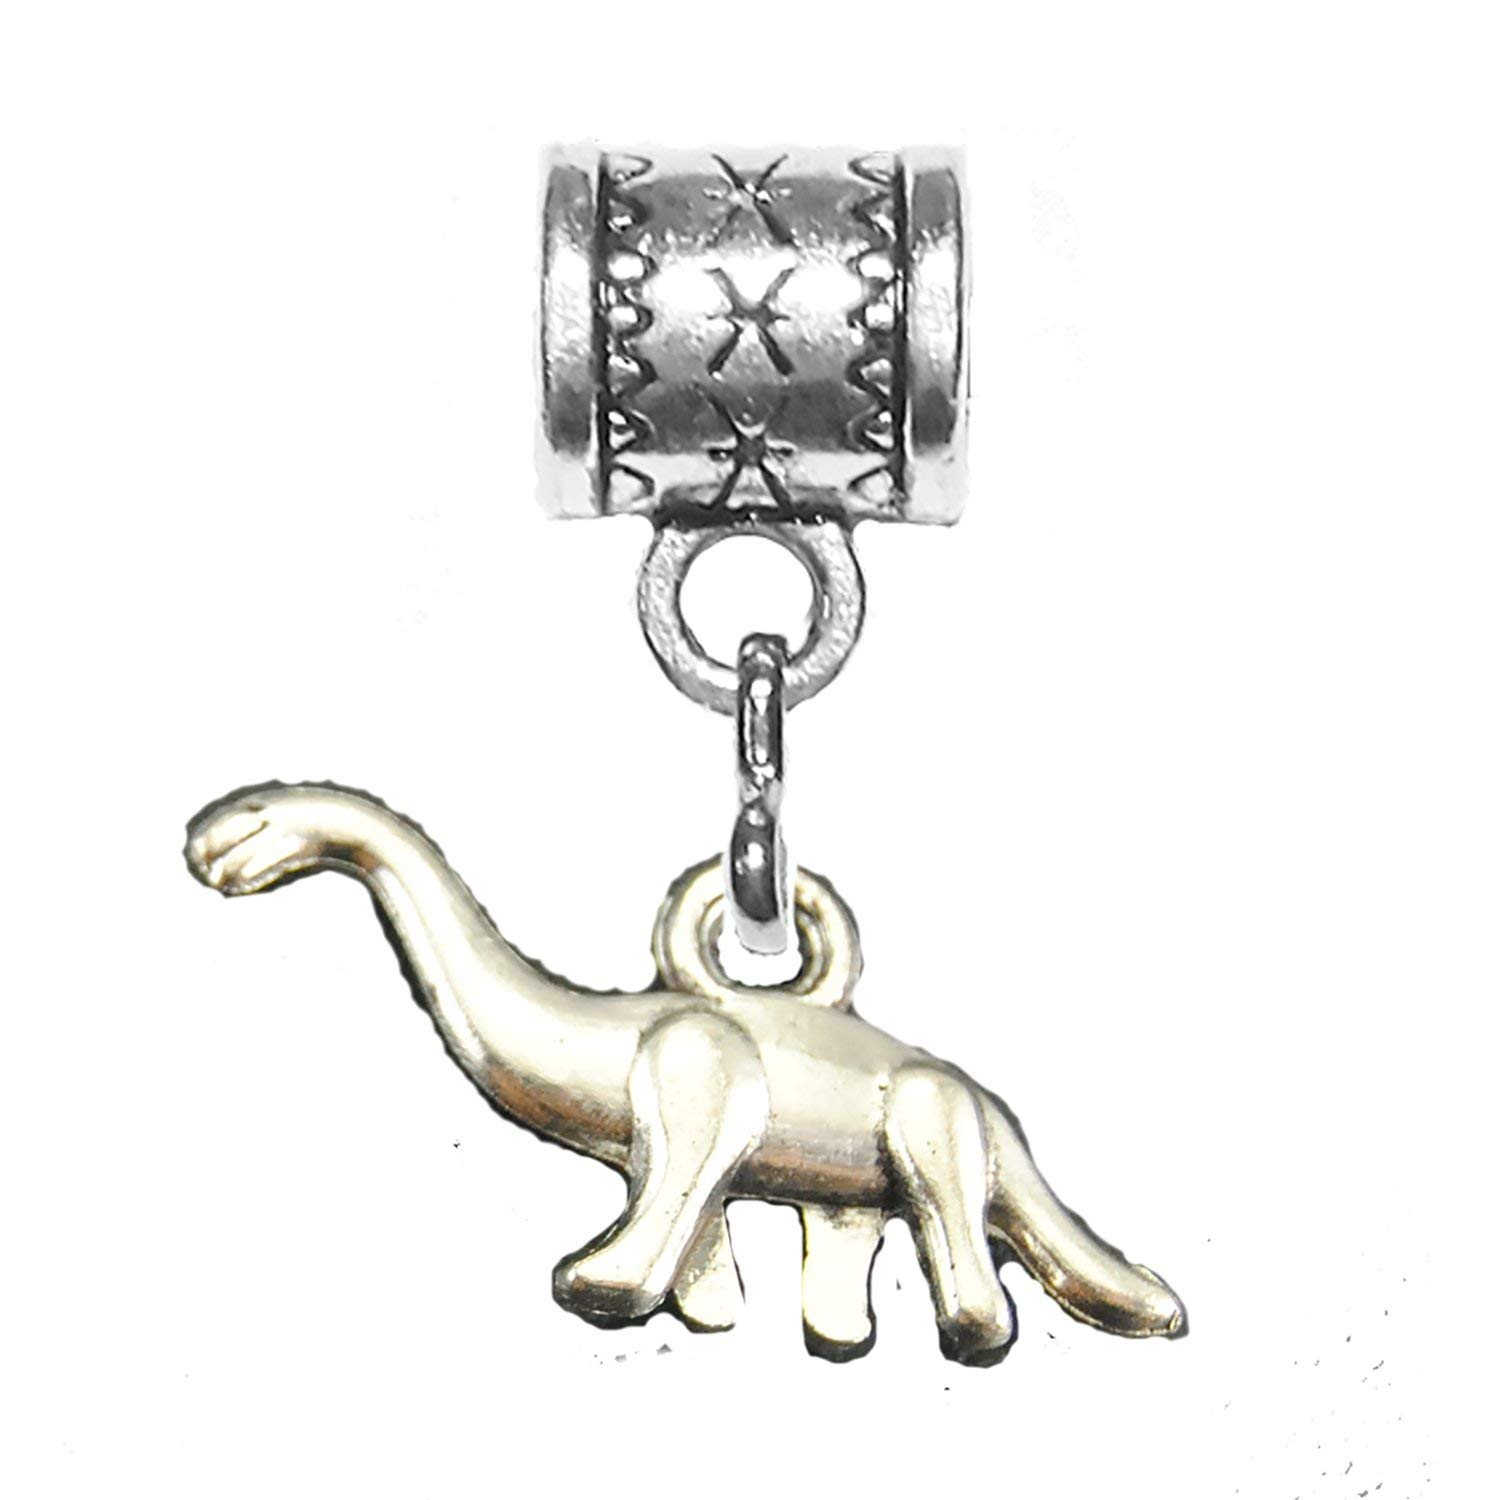 """""""Dinosaur"""" - brontosaurus is an antique silver charm by Mossy Cabin for modern large hole snake chain charm bracelets, or add to a neck chain, pendant necklace or key chain"""